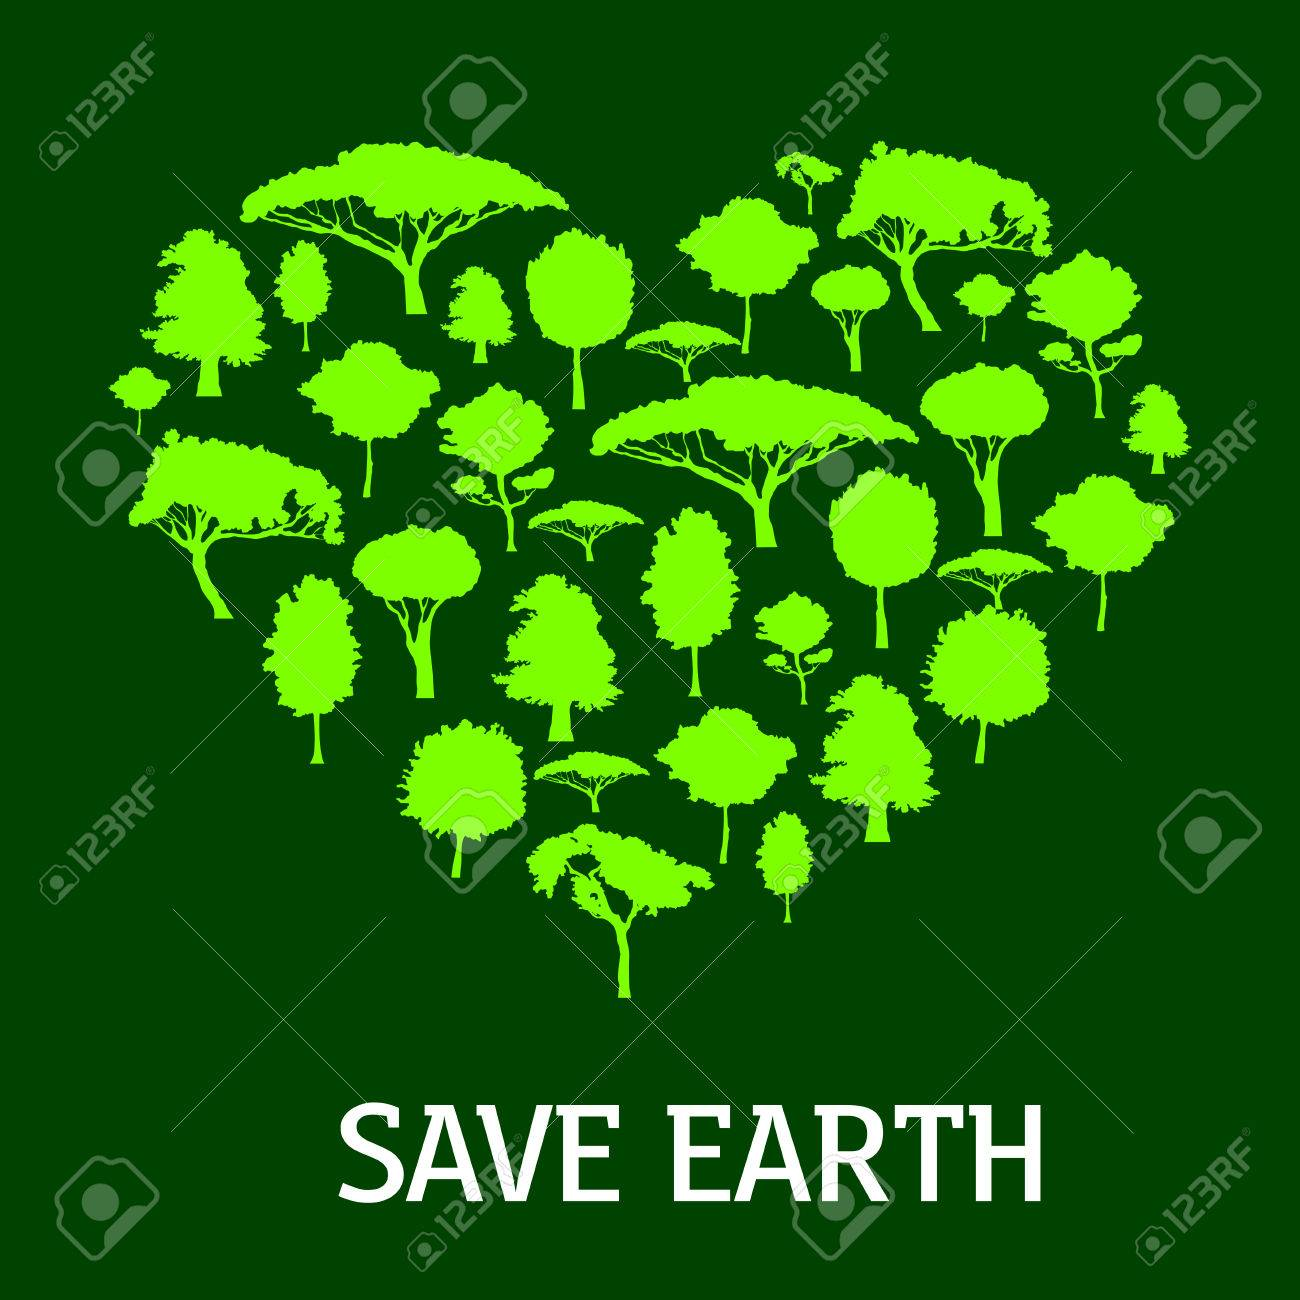 Green heart of nature symbol made up of trees and plants green heart of nature symbol made up of trees and plants silhouettes may be use buycottarizona